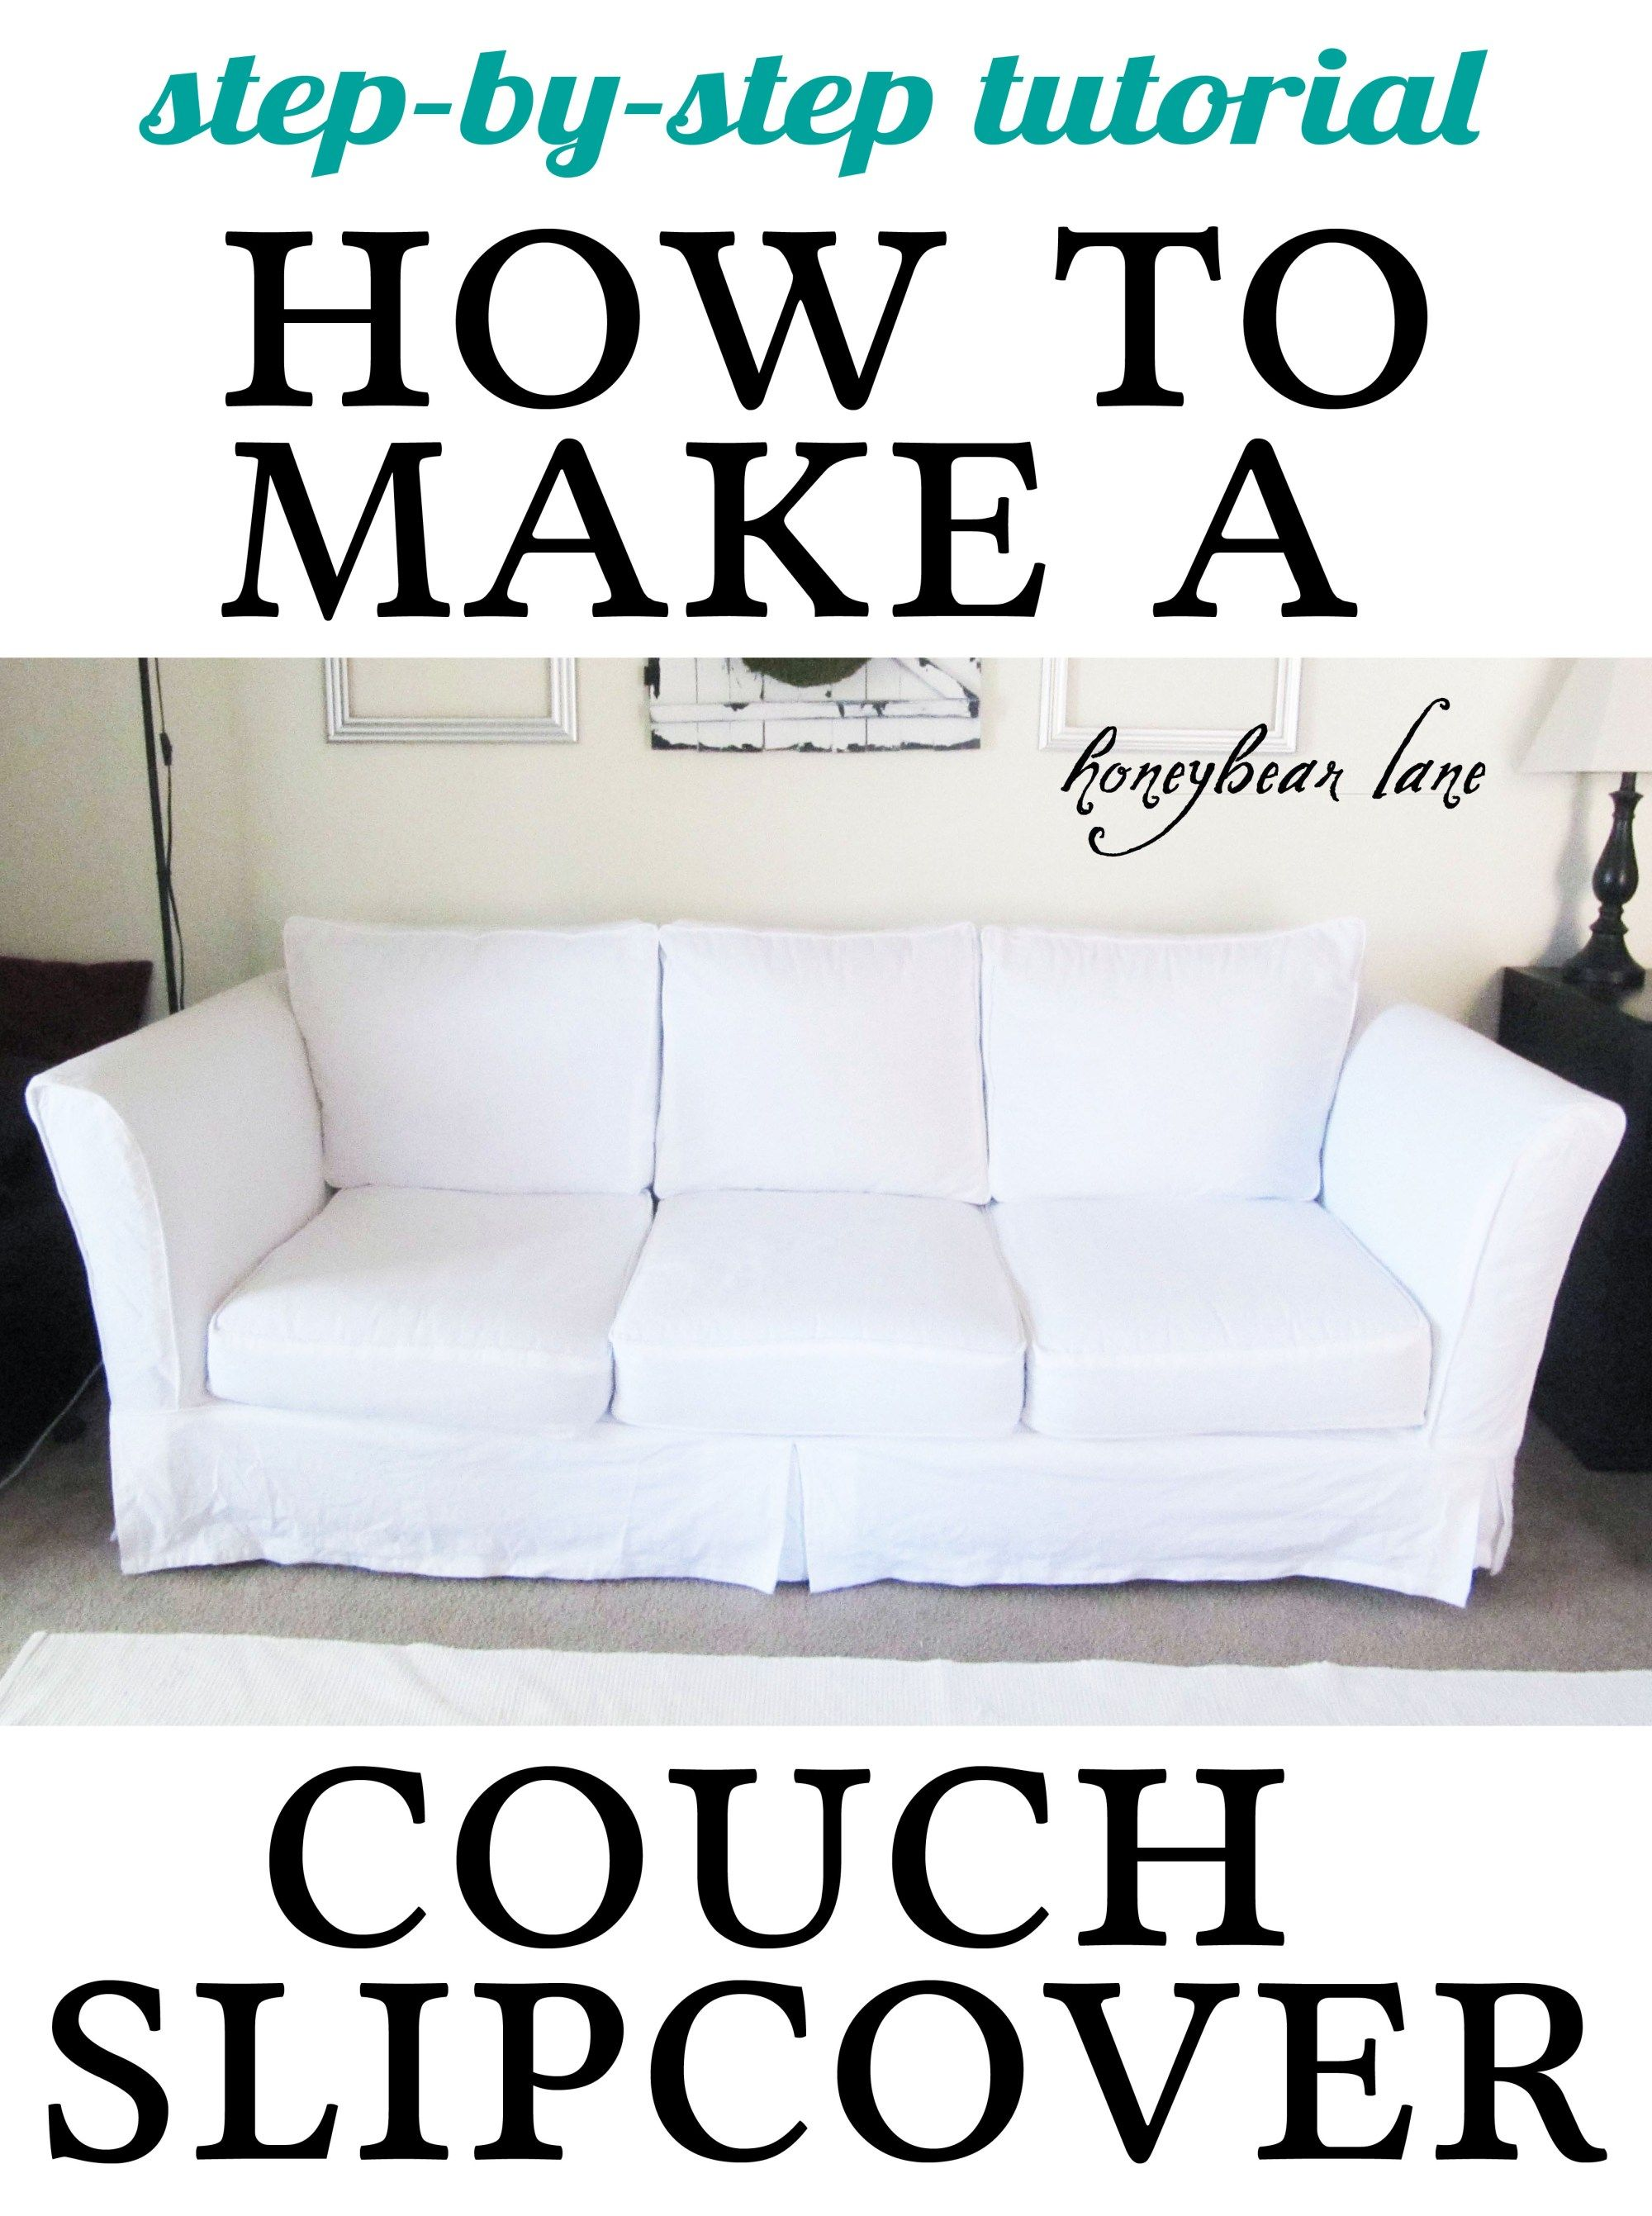 How To Make A Couch Slipcover Part 1 In 2020 Diy Sofa Cover Slip Covers Couch Diy Couch Cover